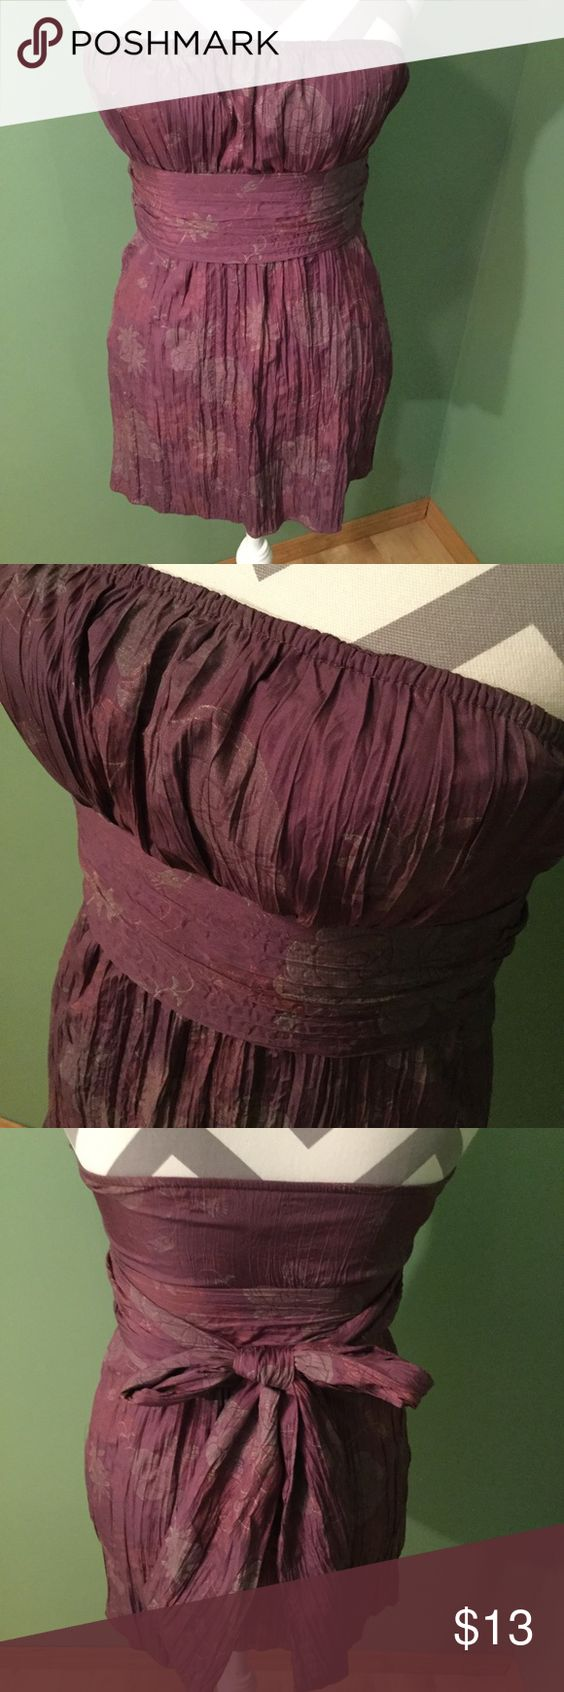 Strapless Dressy Top Beautiful plum colored strapless top, zips on the side. Ties in the back or front. Fabric has a shine to it, but it's not scratchy. Charlotte Russe Tops Tunics